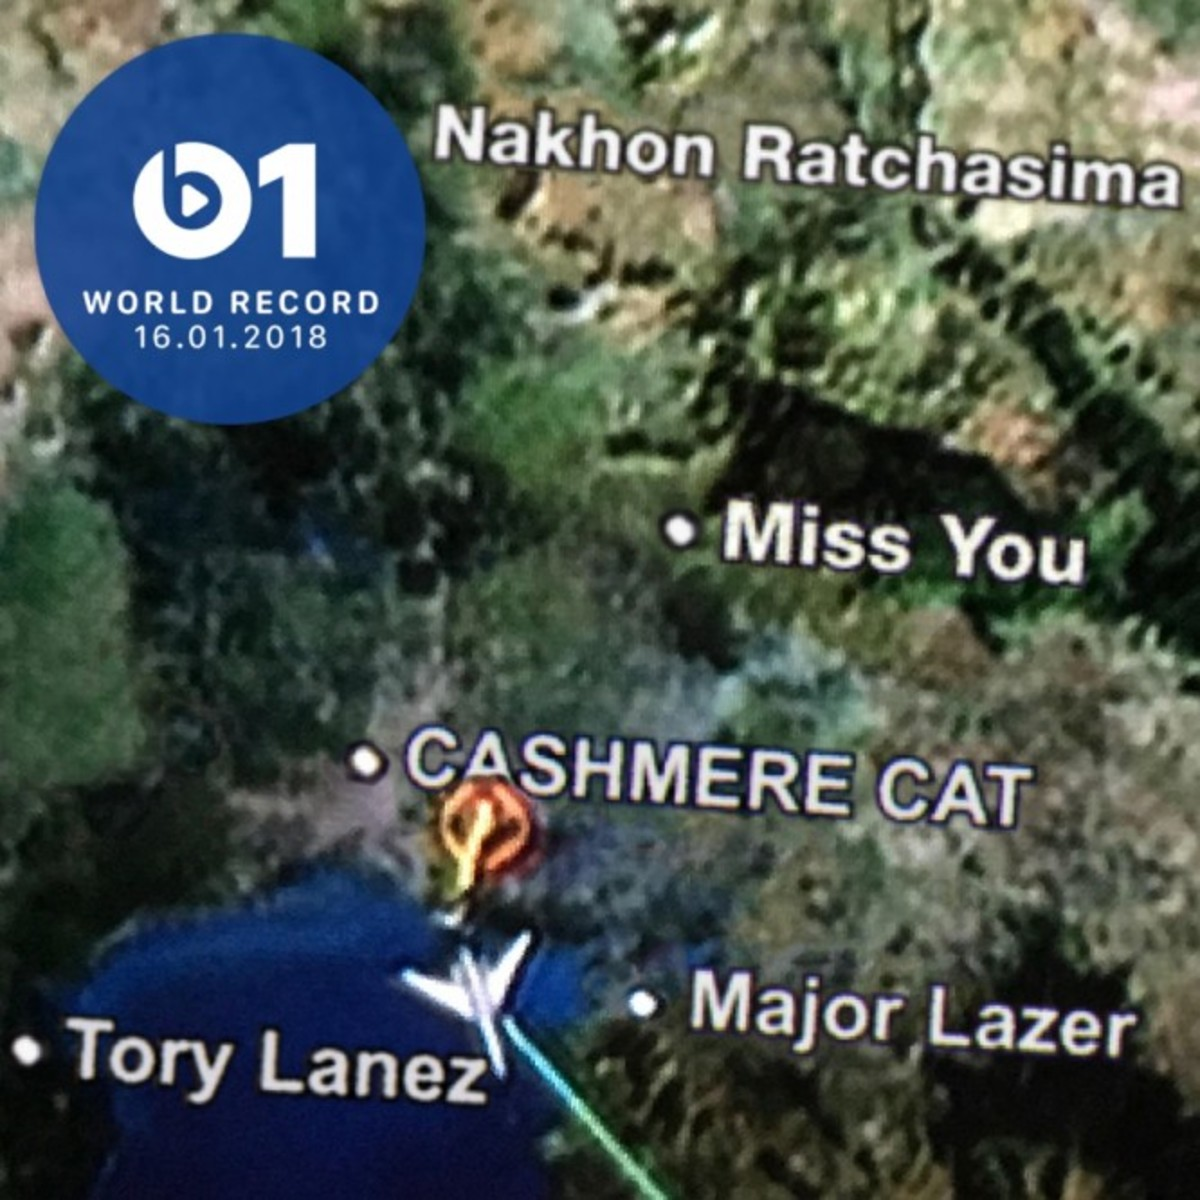 Cashmere Cat, Major Lazer, Tory Lanez - Beats 1